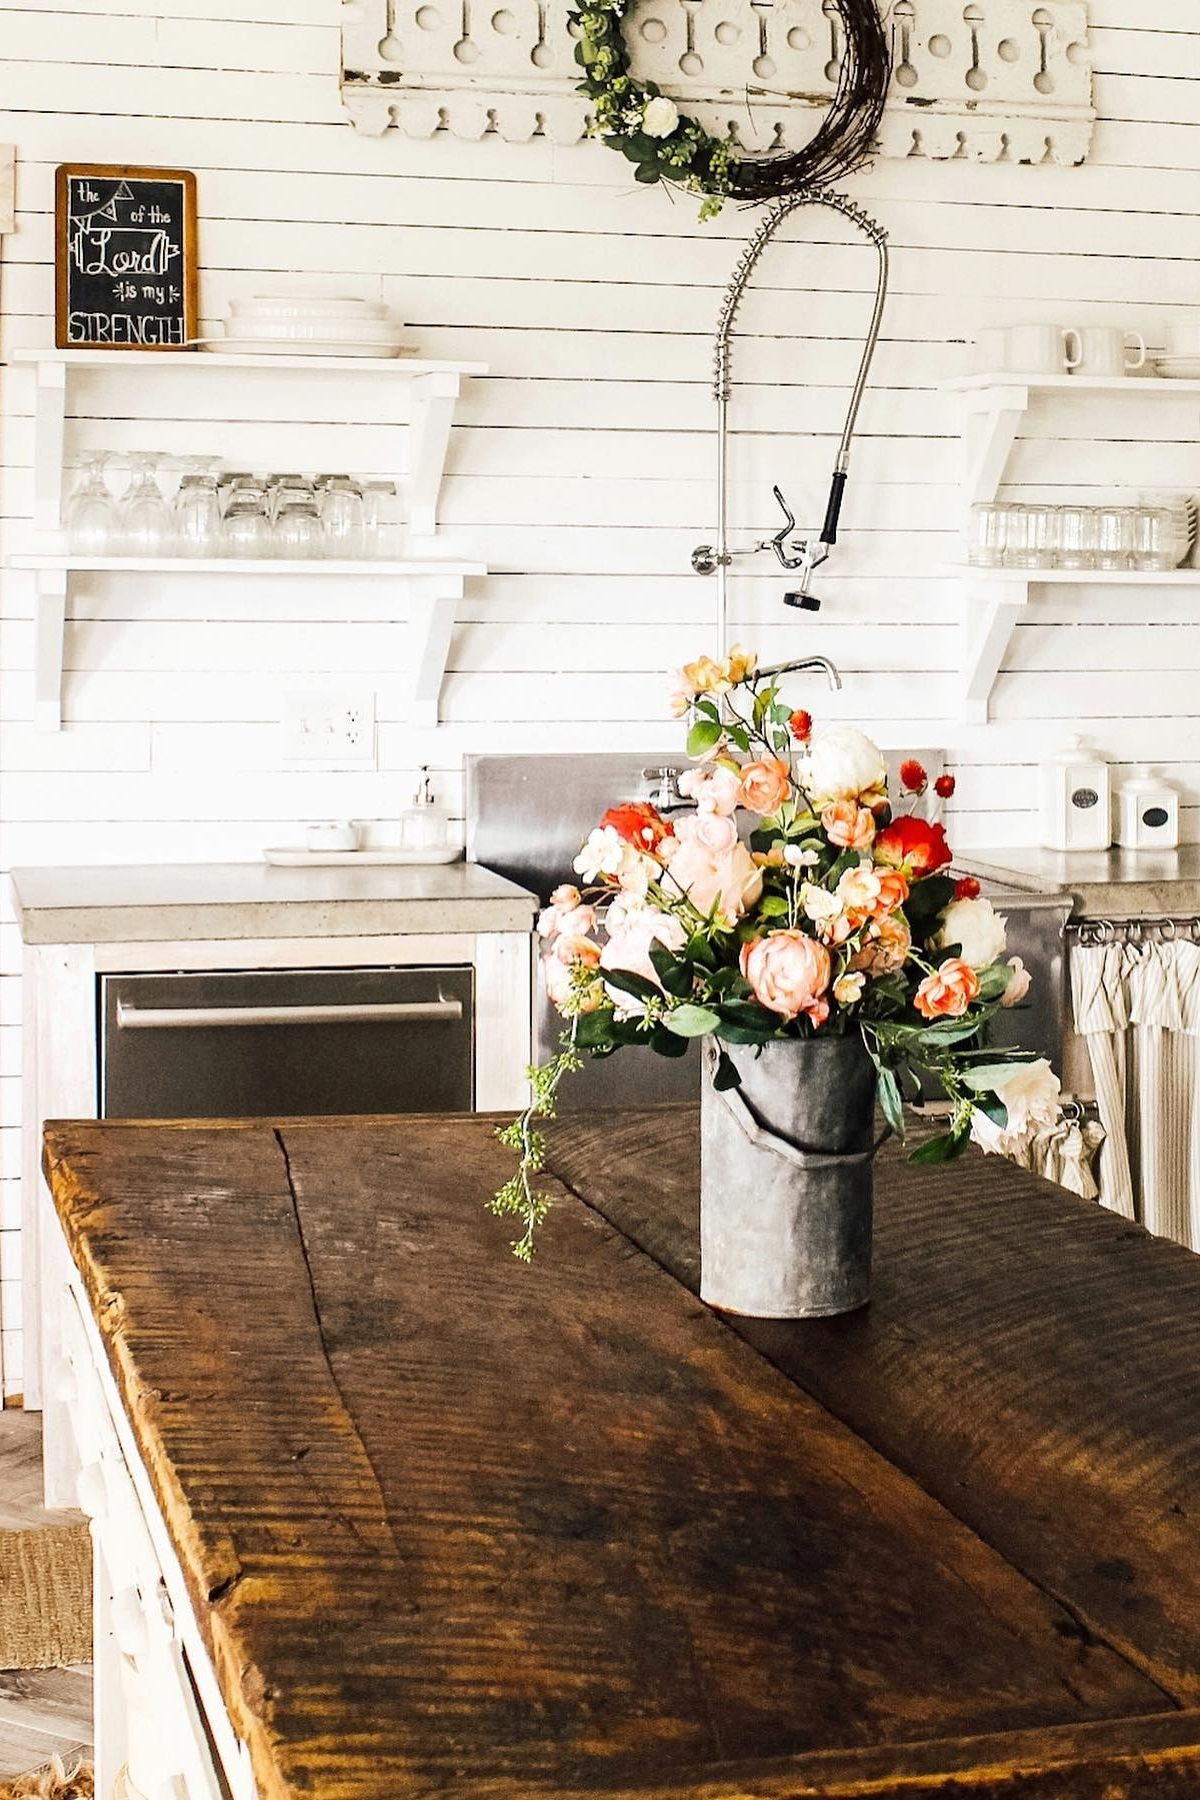 Create an affordable DIY farmhouse flower arrangement with reusable wildflowers from Afloral.com. Image by @fletchercreekcottage #fakeflowers #farmhousedecor #farmhousekitchen